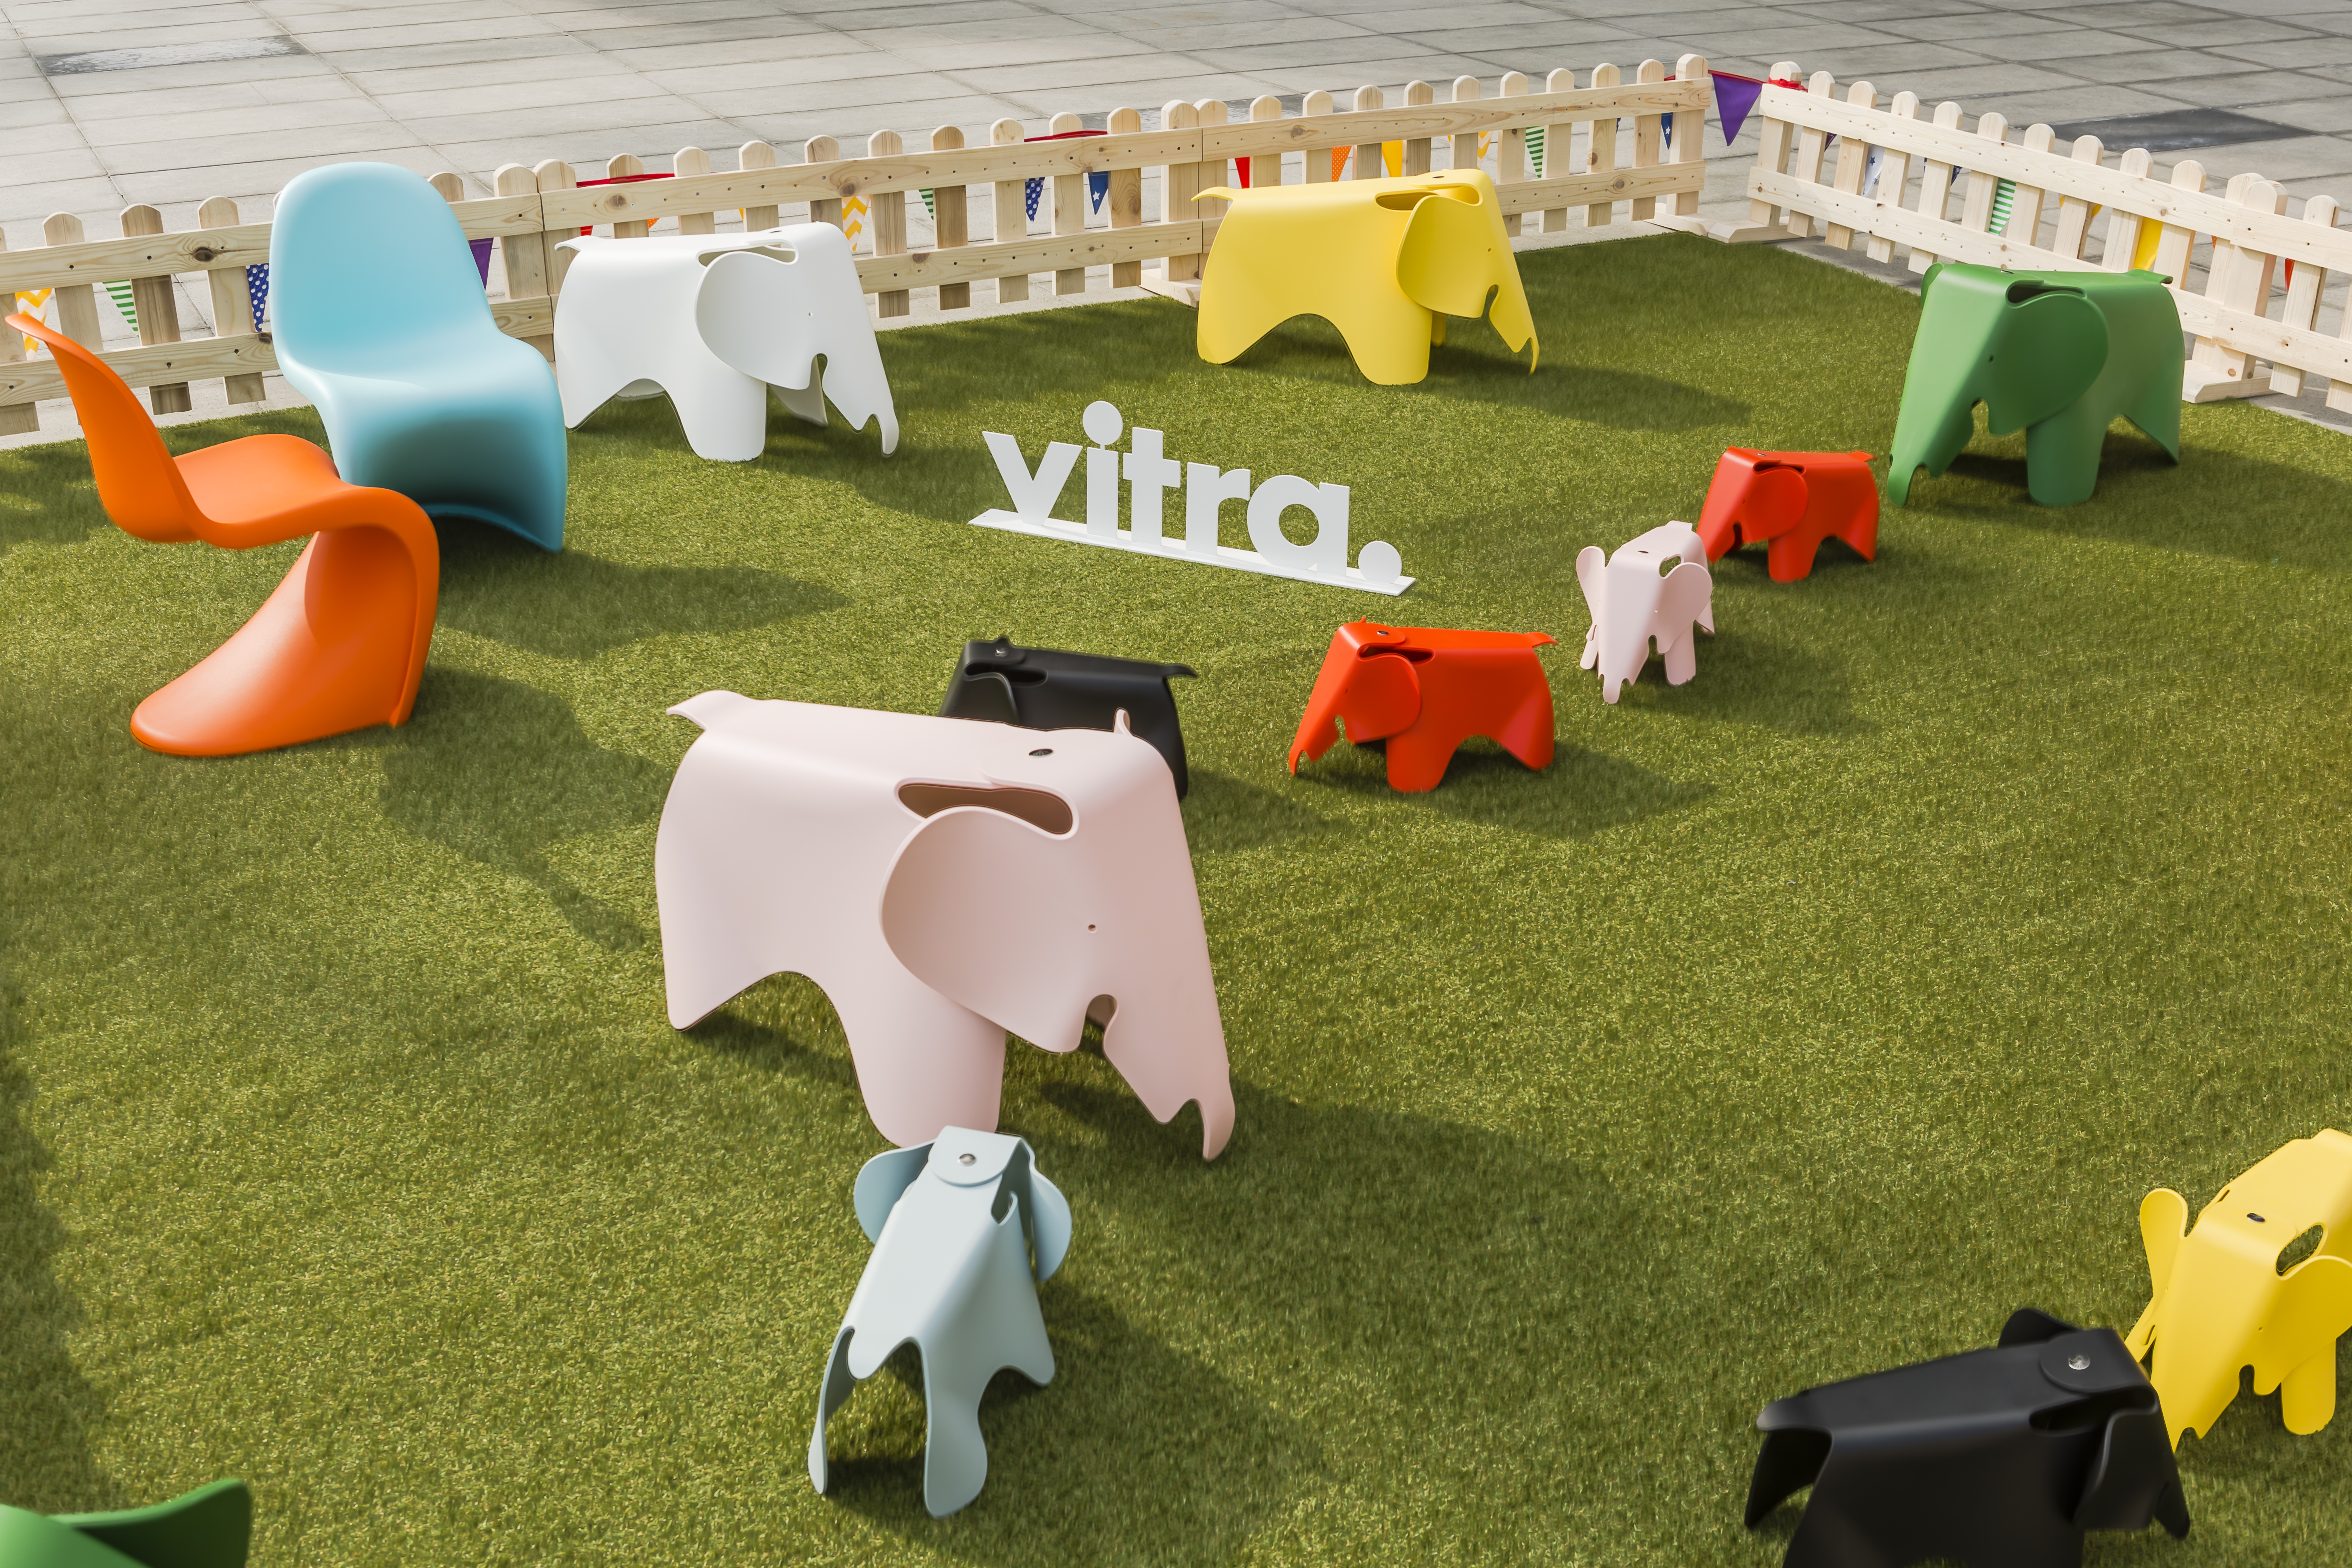 Swiss Design Brand Vitra Has Partnered With Le Bhv Marais To Open Its First Dedicated Home Accessories And Furniture Retail E Within A Department